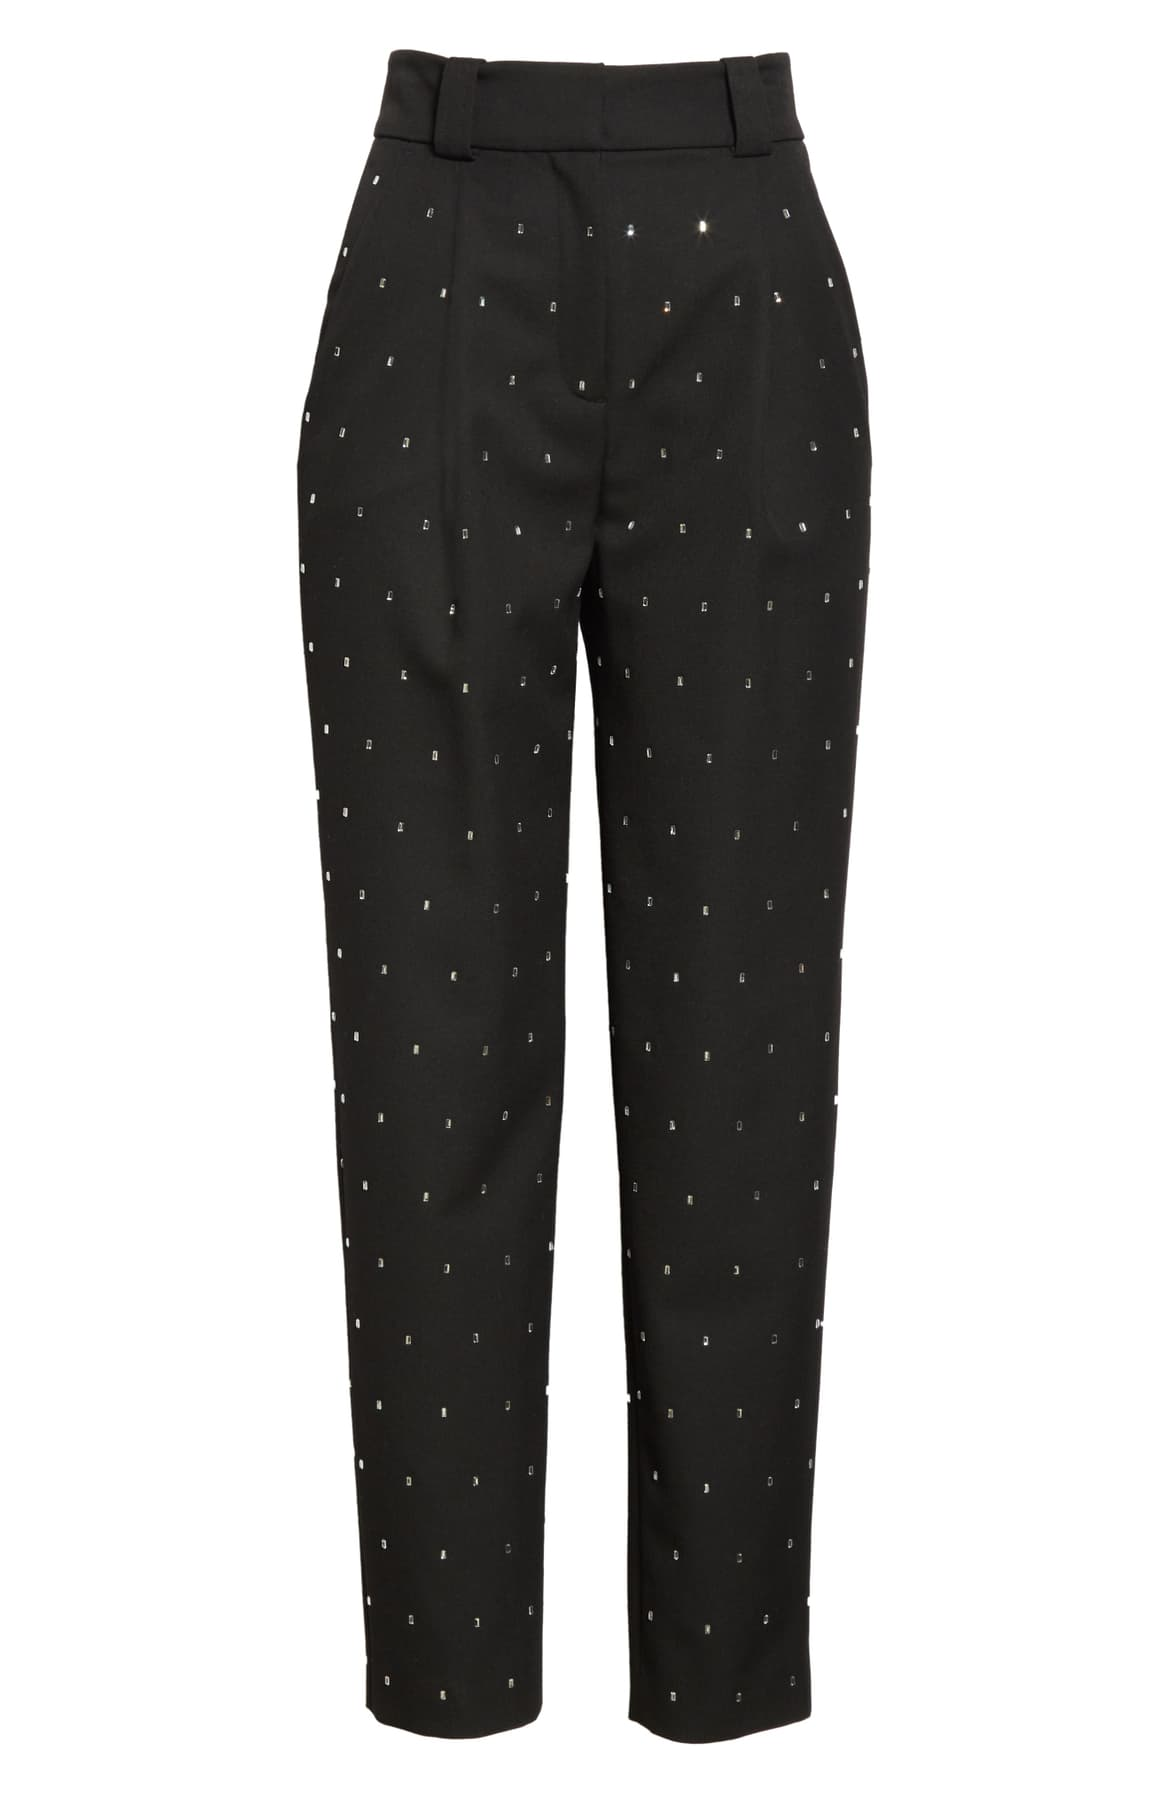 "<a  href=""https://shop.nordstrom.com/s/a-l-c-colin-crystal-pleated-tapered-pants/5442361/full?origin=keywordsearch-personalizedsort&breadcrumb=Home%2FAll%20Results&color=black"" target=""_blank"" title=""https://shop.nordstrom.com/s/a-l-c-colin-crystal-pleated-tapered-pants/5442361/full?origin=keywordsearch-personalizedsort&breadcrumb=Home%2FAll%20Results&color=black"">A.L.C. Colin Crystal Pleated Tapered Pants - $550</a>. From cozy to gold hued to tailored, Nordstrom has the hottest trends for getting glam this holiday season! (Credit: Nordstrom)"